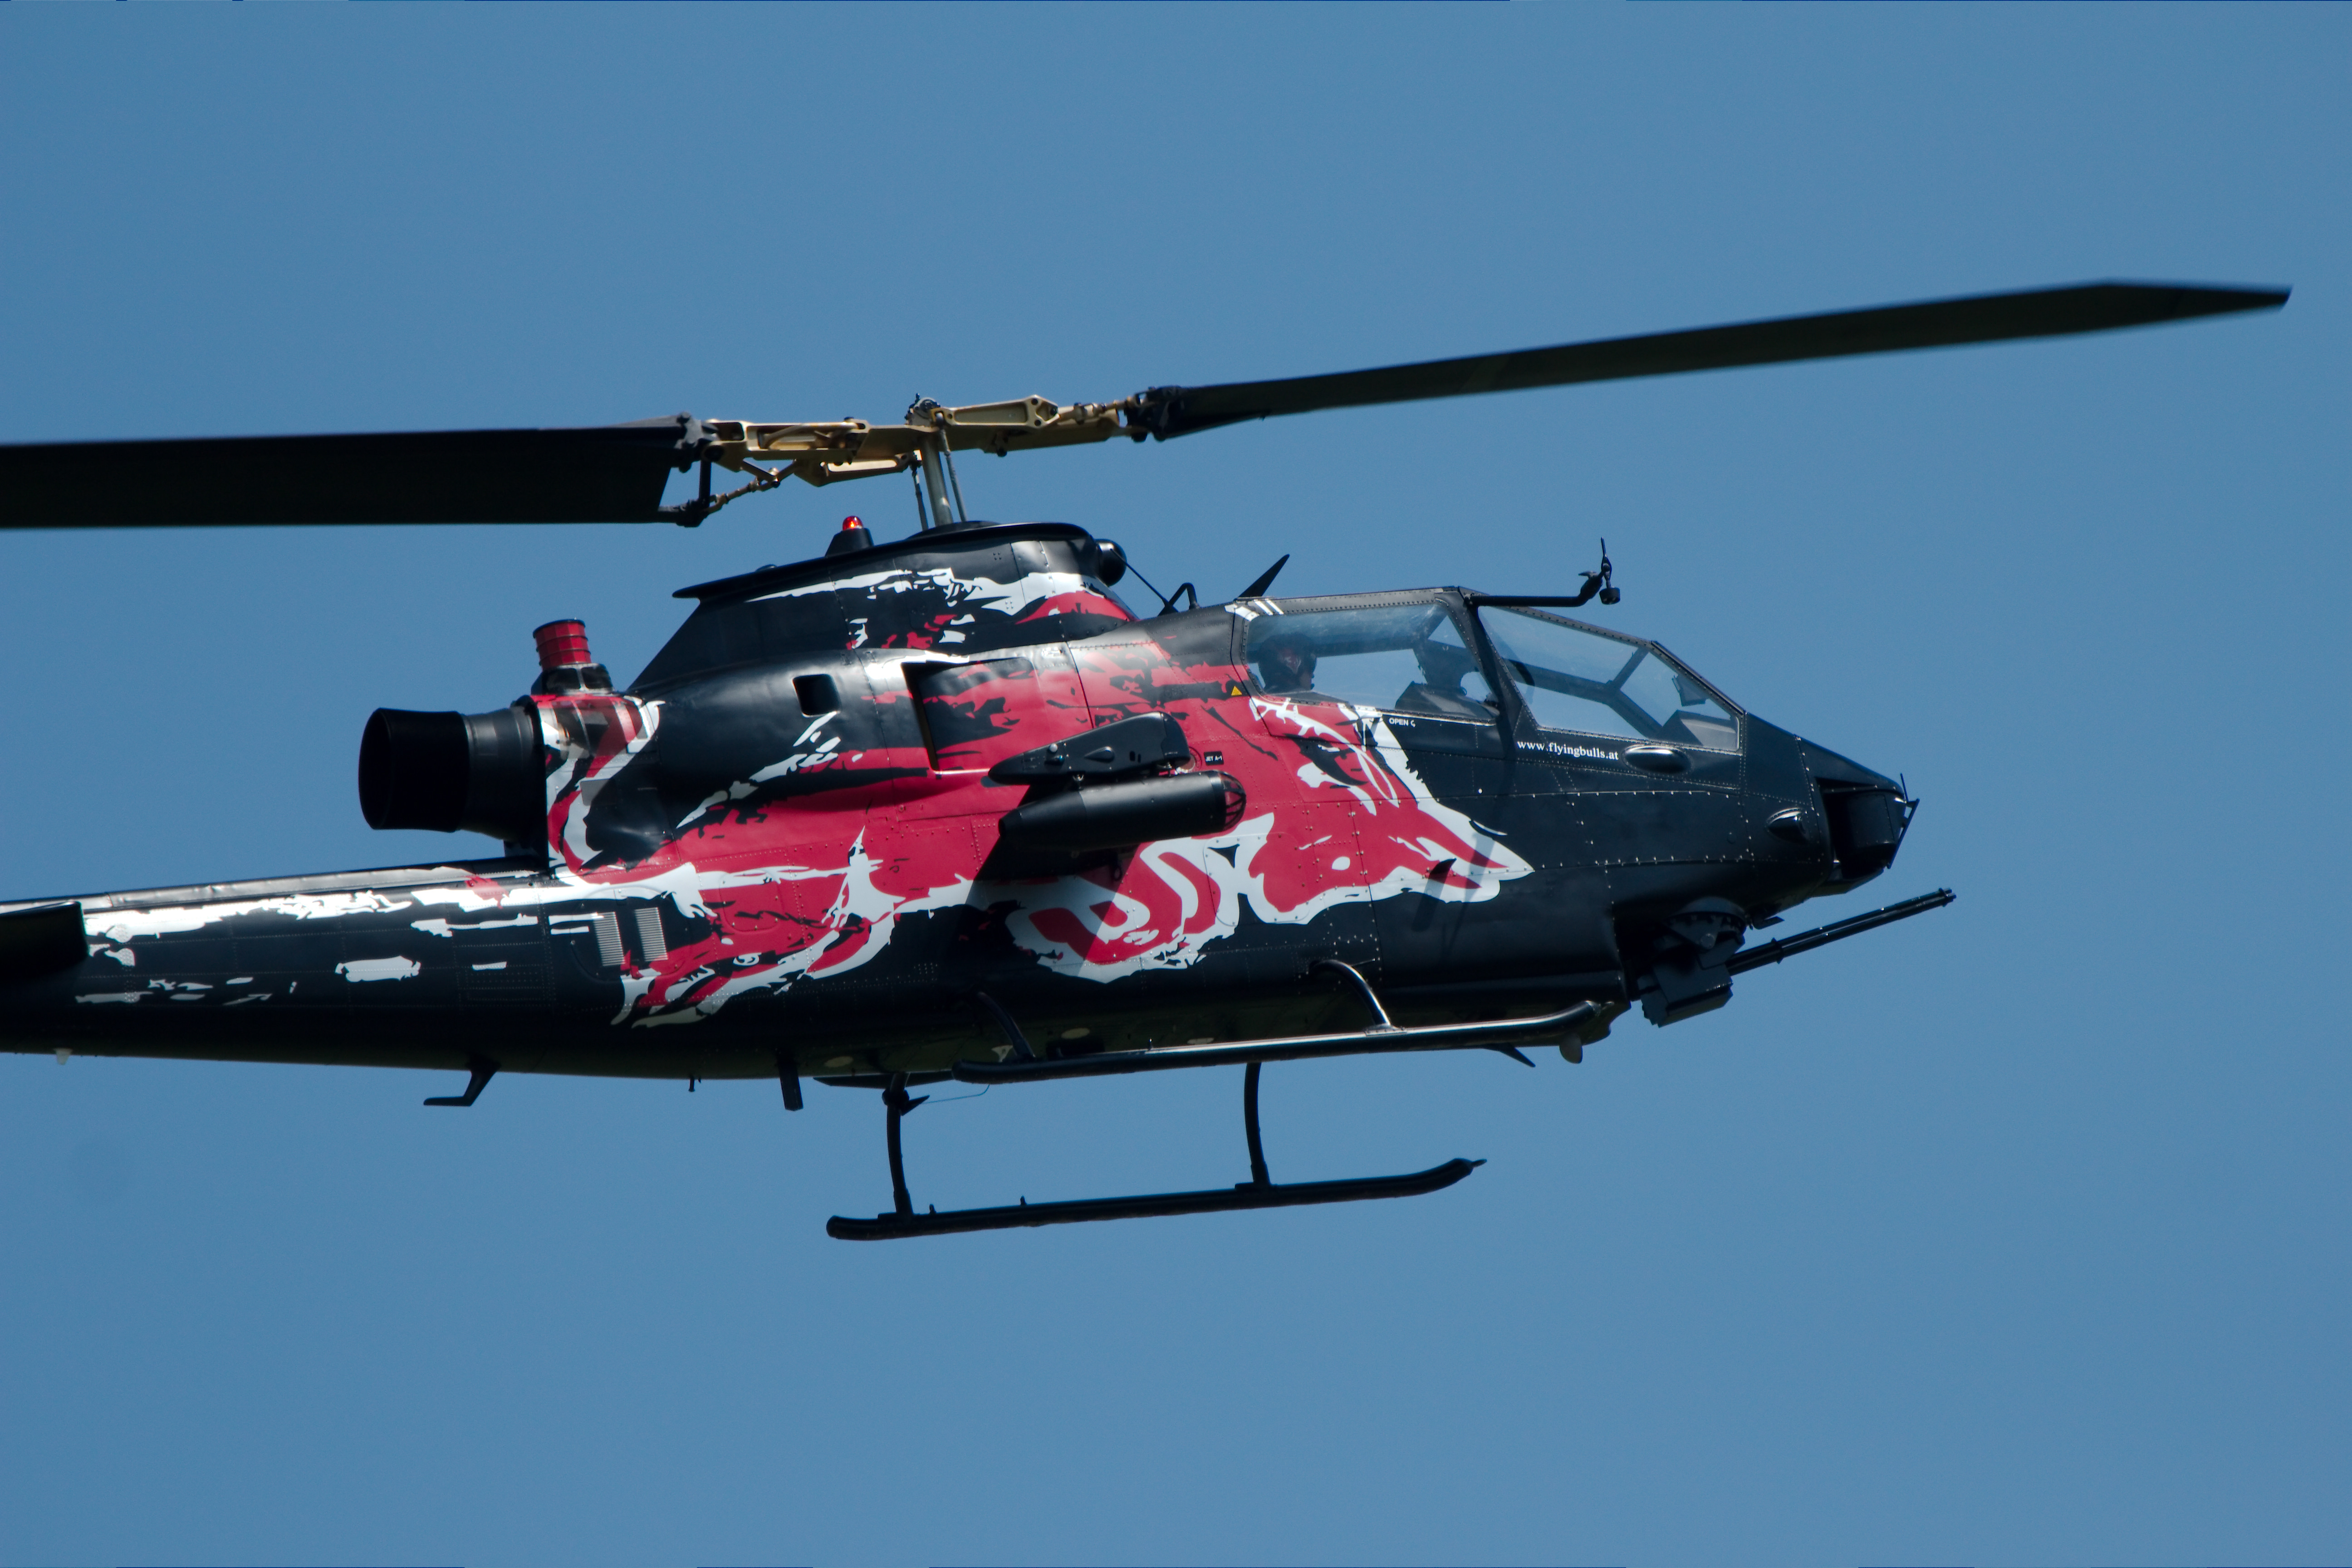 bell 427 helicopter with File Bell T Ah 1f Cobra Red Bull Airpower 2011 03 on alfahelicopter also File Professional Helicopter Services  VH NDV  Bell 206B 3 Jet Ranger III landing at Avalon Airport during the 2013 Australian International Airshow also File MI Helicopters  VH ONR  Bell 206L 3 LongRanger III arriving at Wagga Wagga Airport together with Gabon Deux Morts Dans Un Accident Dhelicoptere Dont Un Francais in addition 1001.